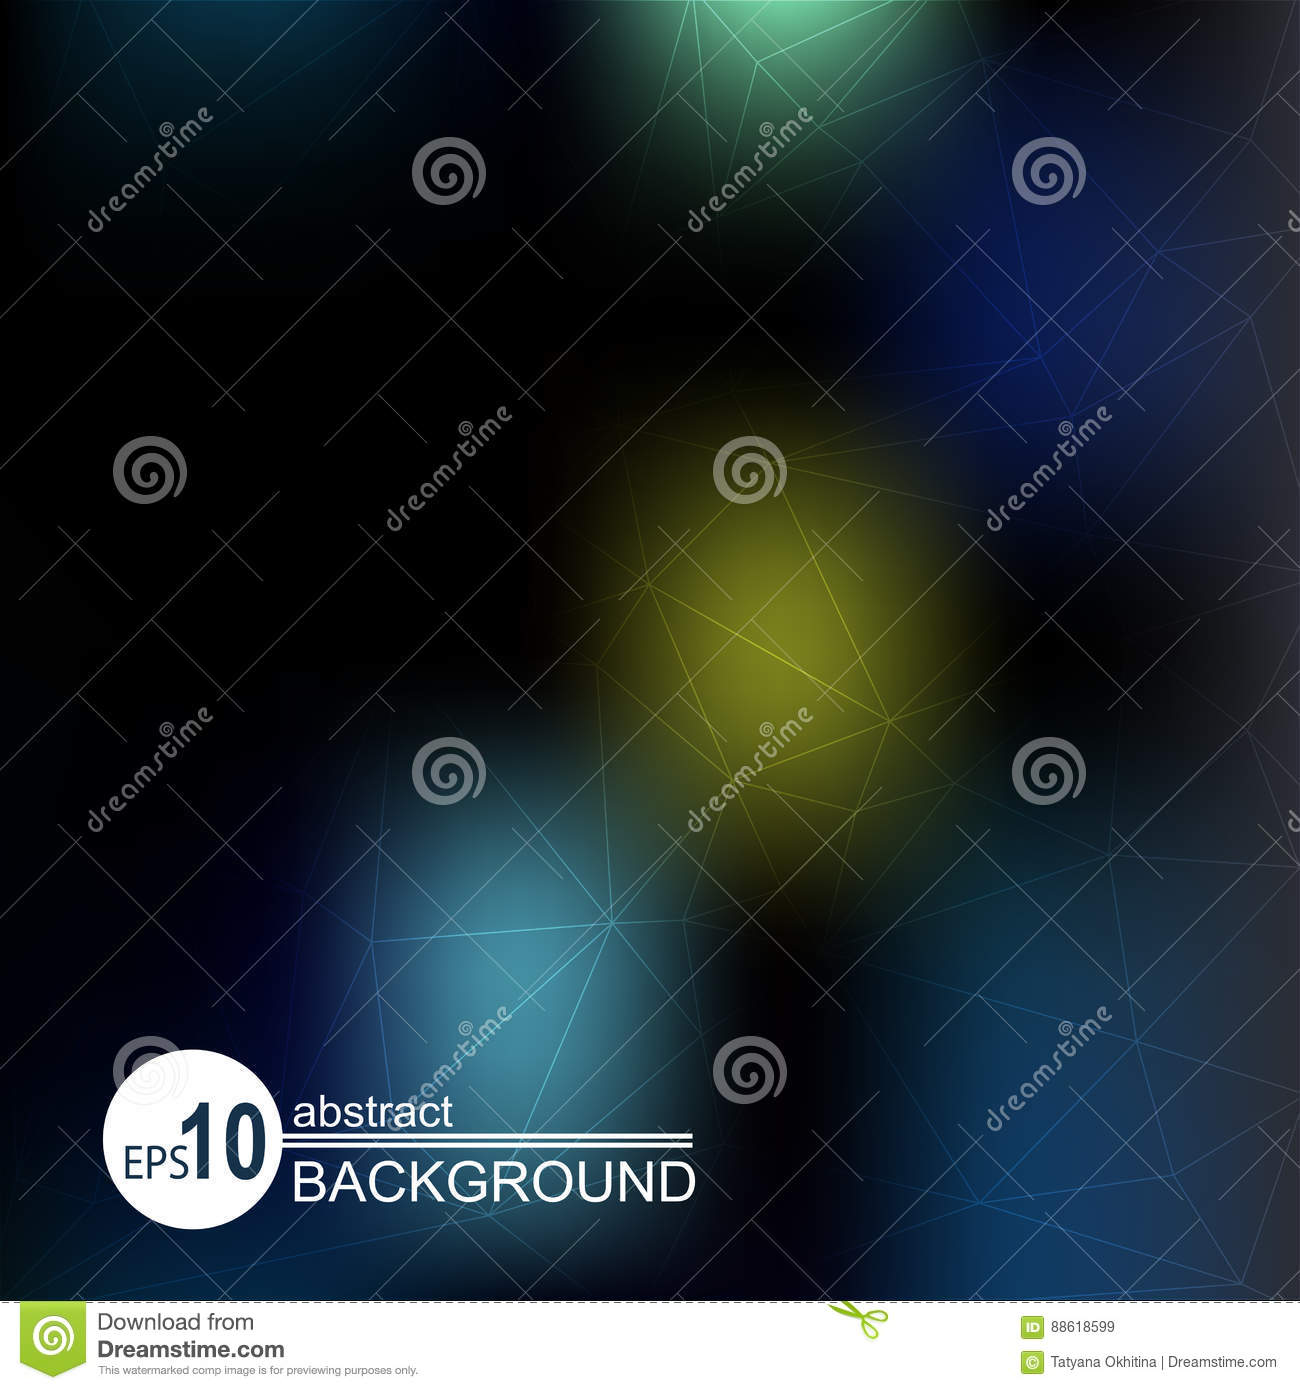 Abstract background-06